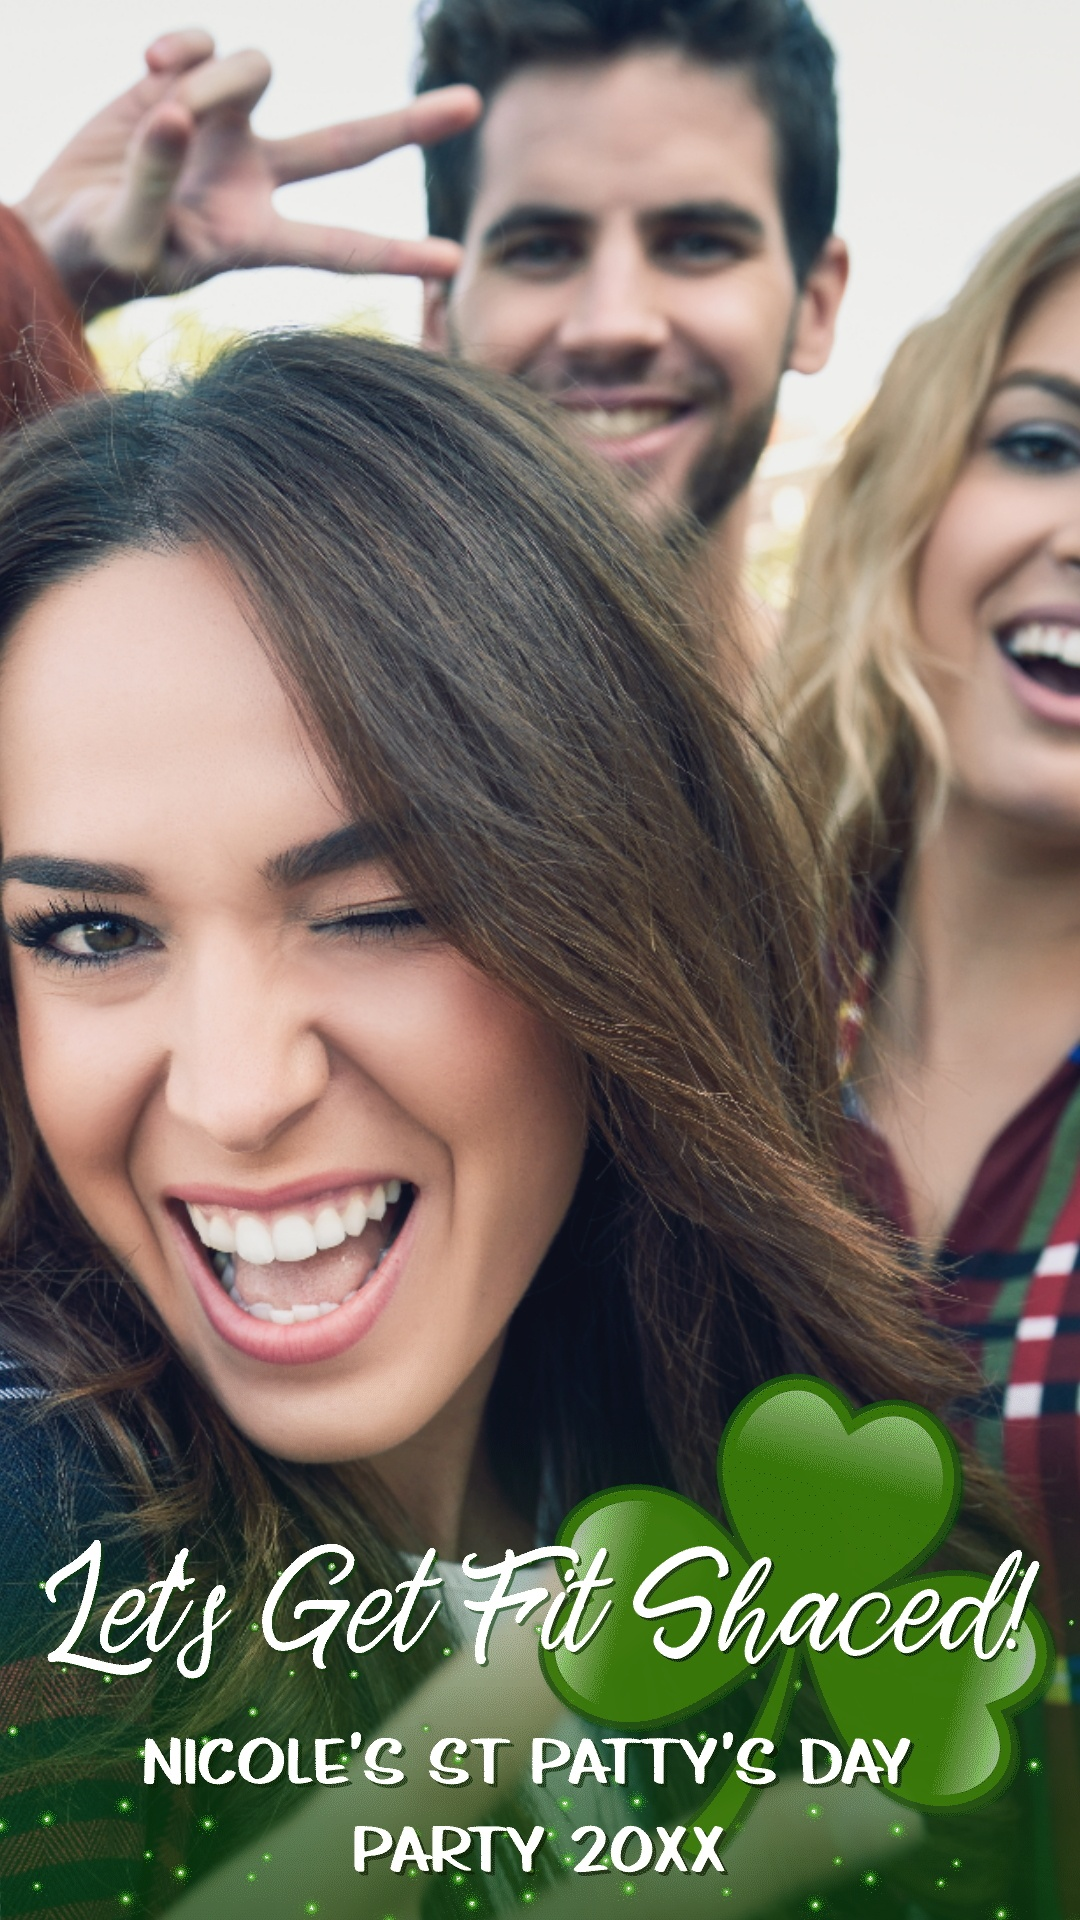 Patrick's Day Snapchat Geofilters